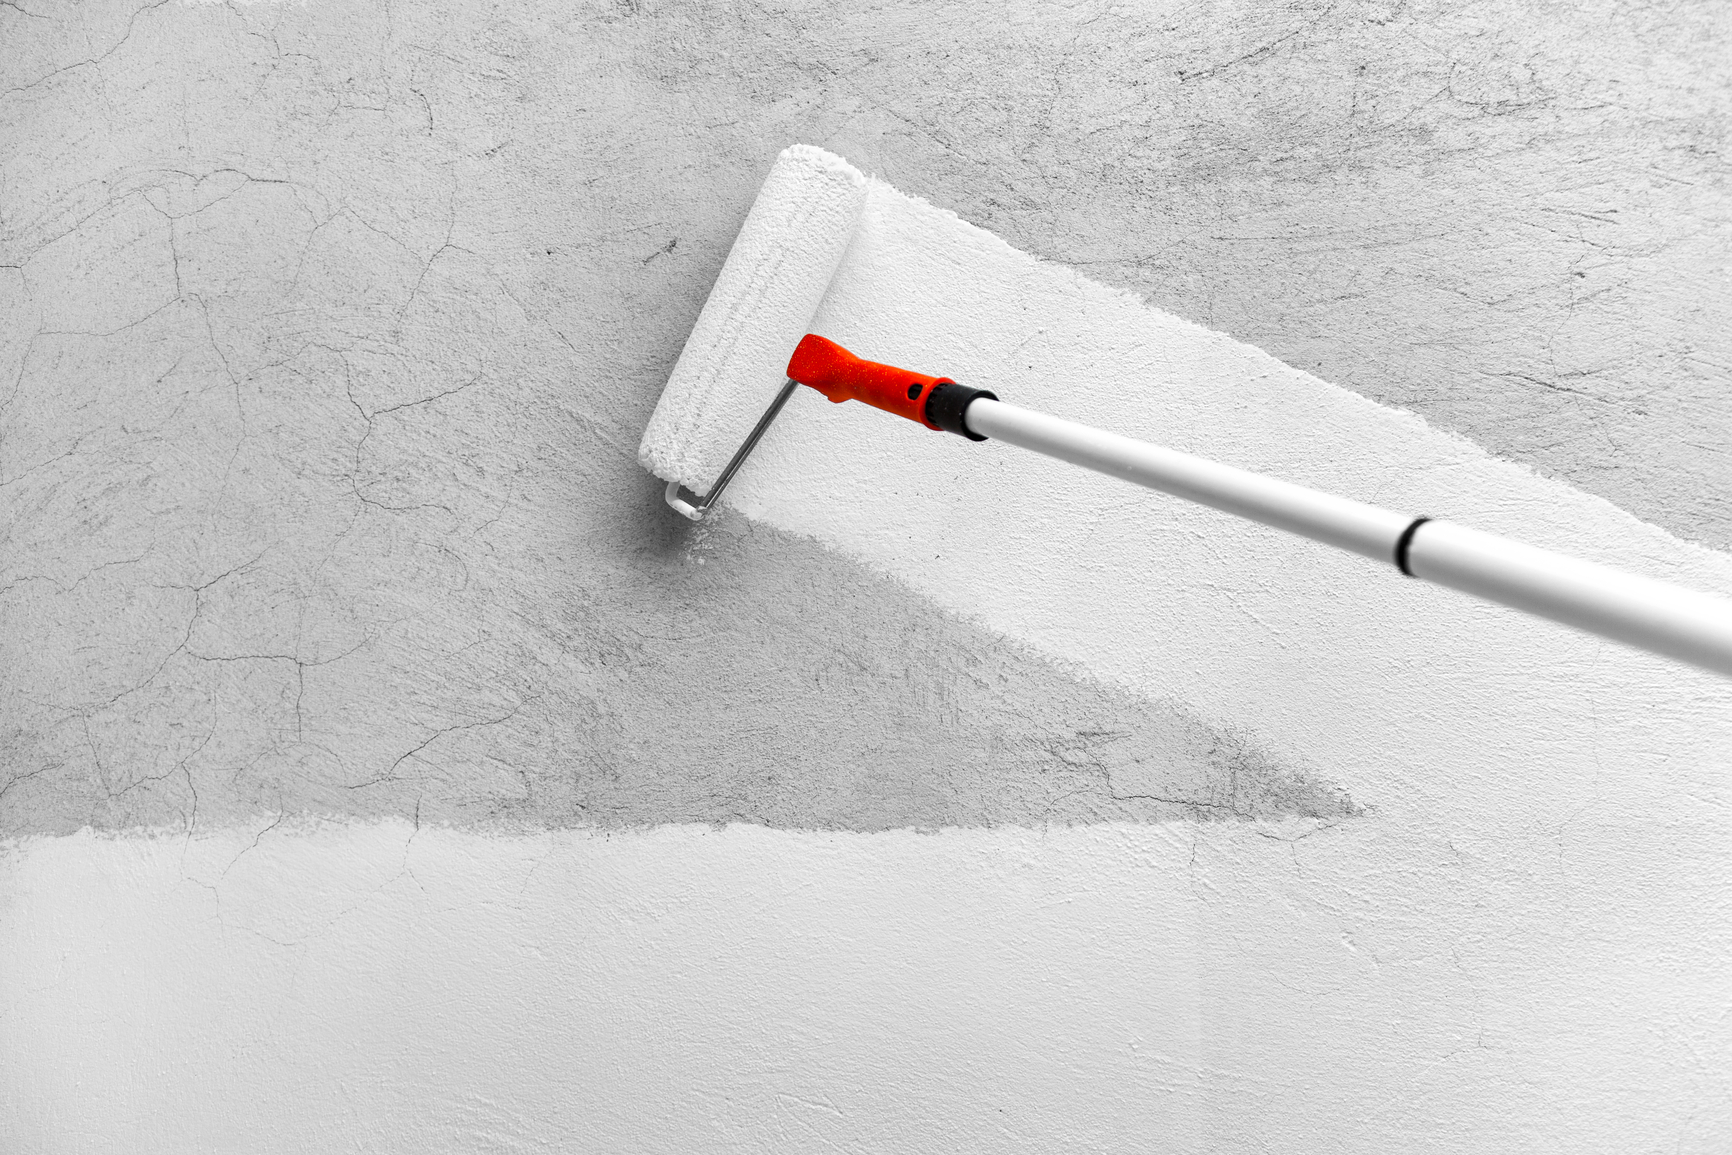 a paint roller paints a rough wall in white latex paint